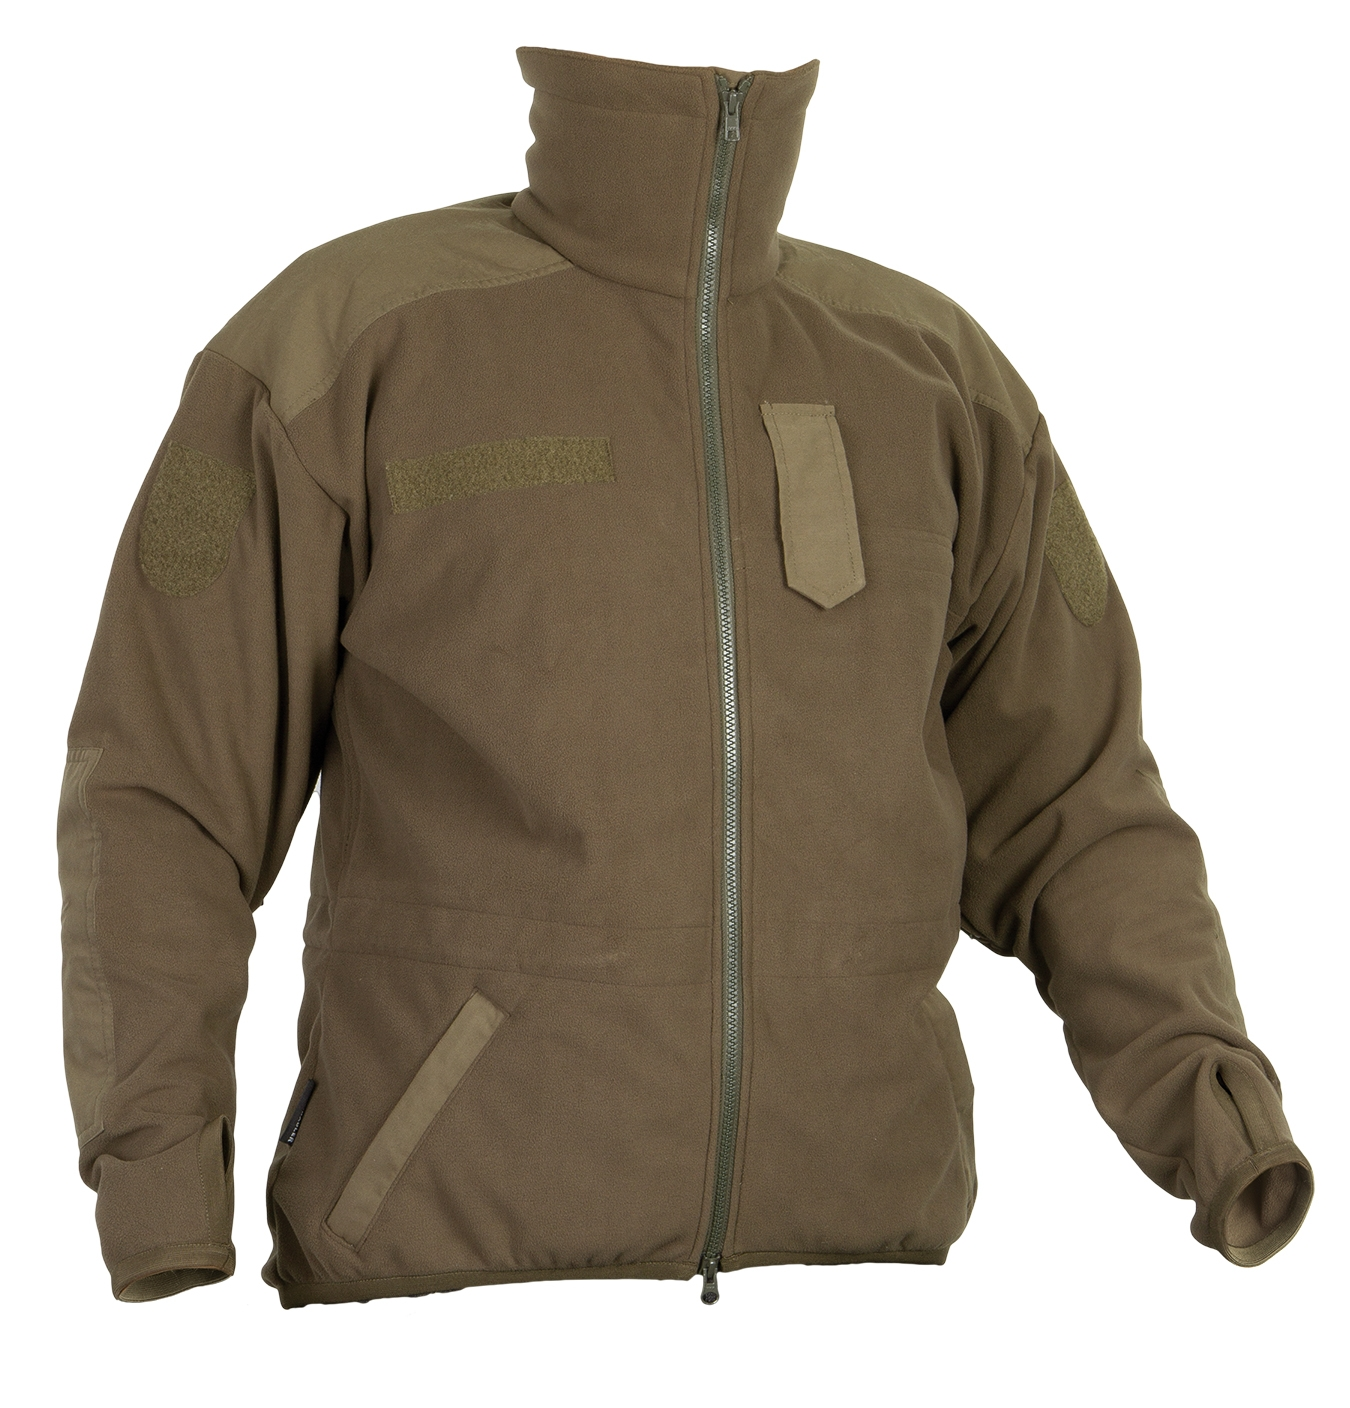 Austrian Army Olive Green Mountain Fleece Forest Army